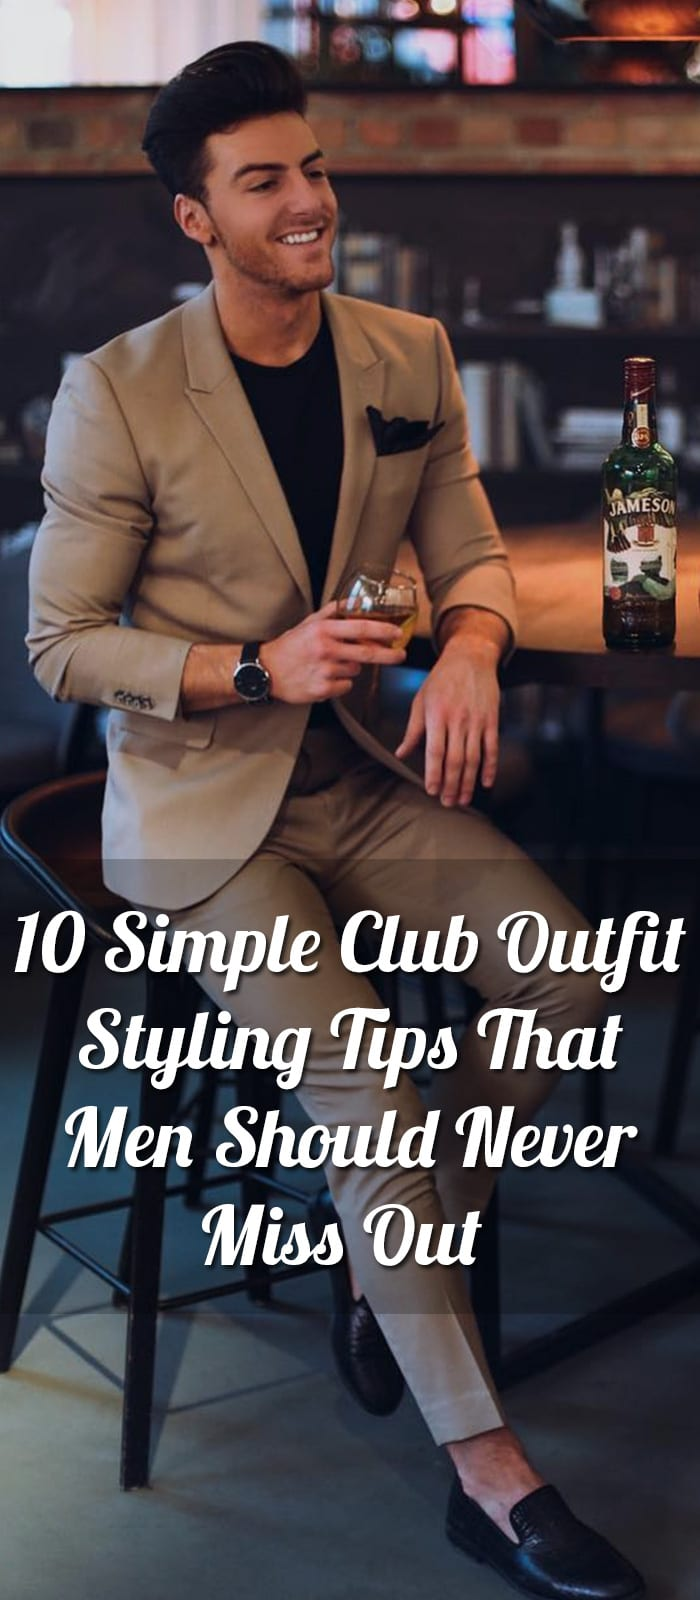 10-Simple-Club-Outfit-Styling-Tips-That-Men-Should-Never-Miss-Out